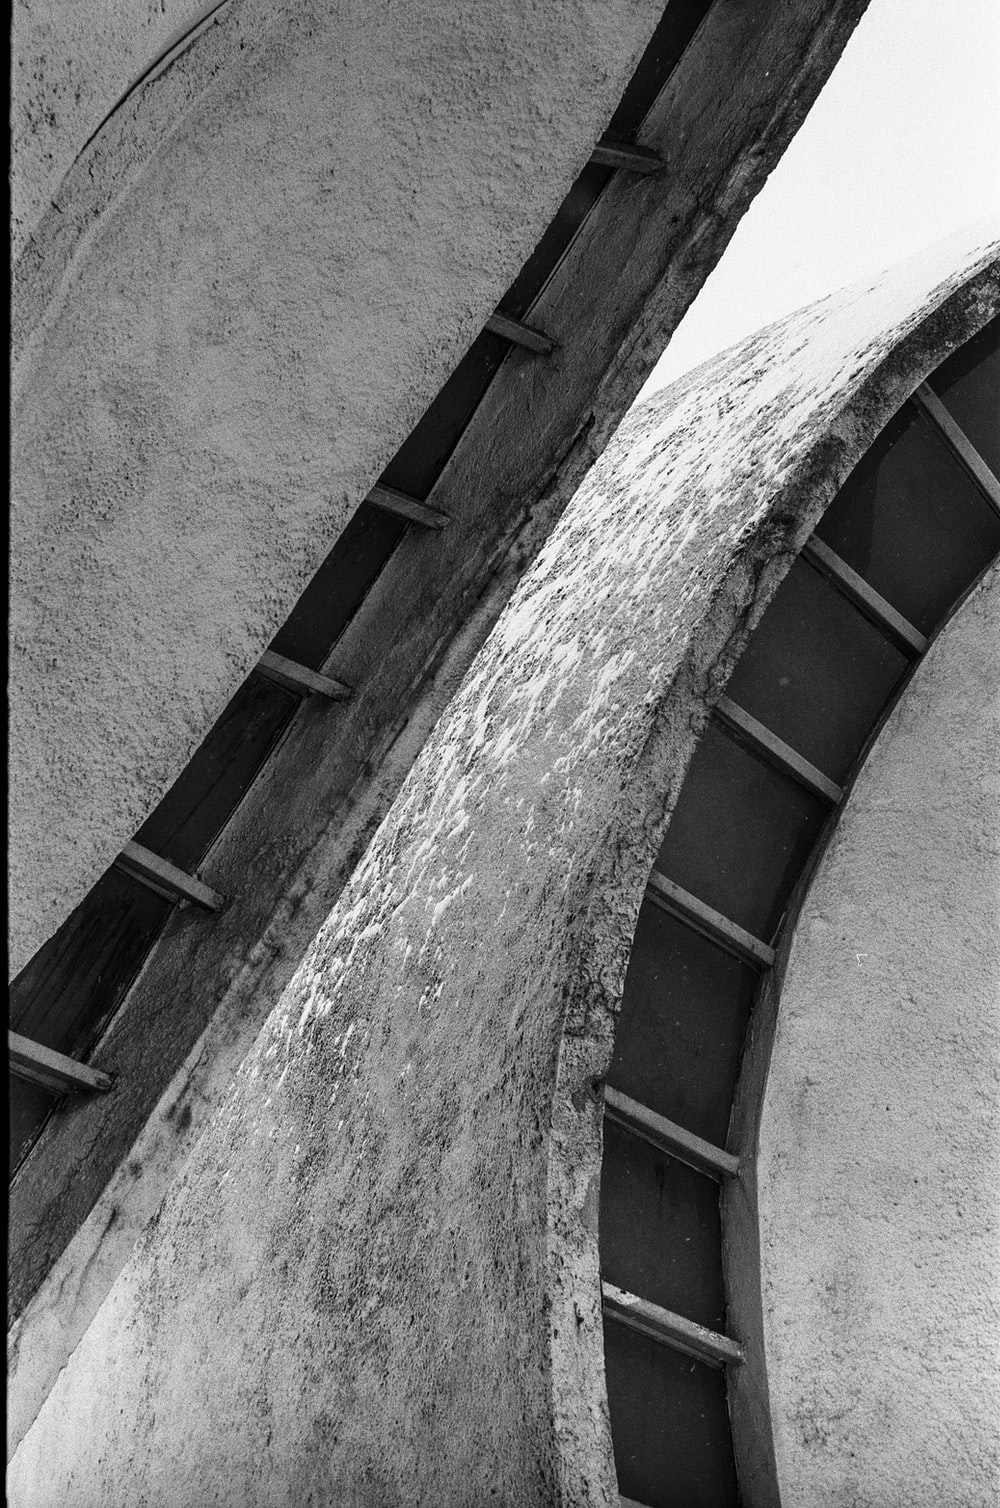 grayscale photo of concrete stairs